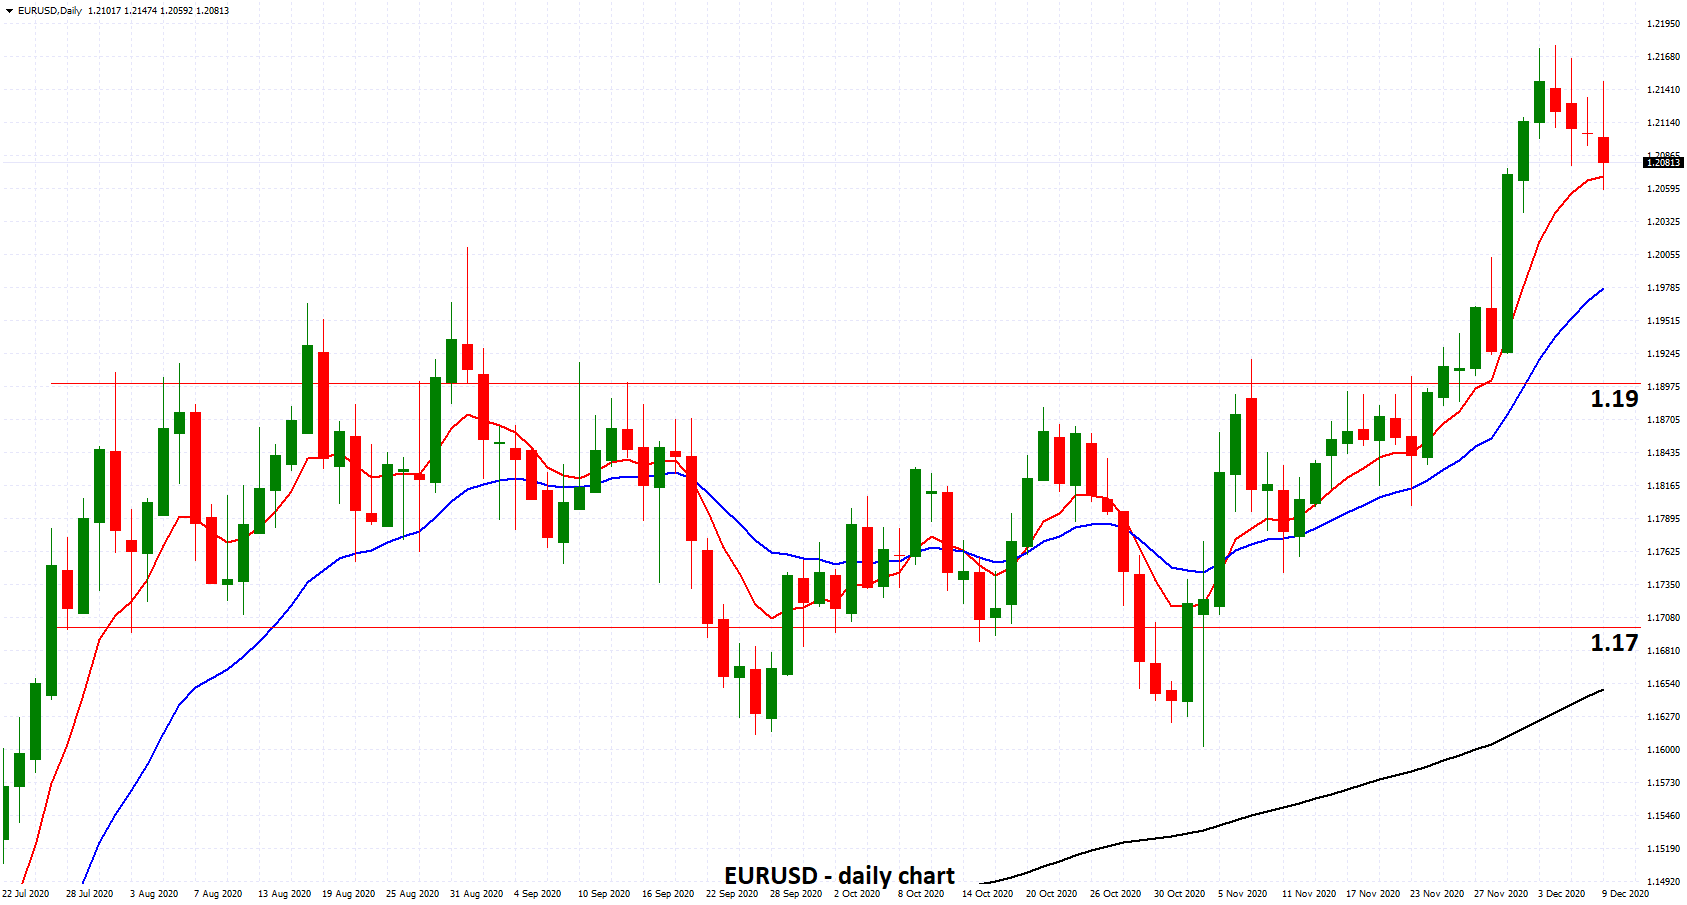 EURUSD - Eases from Two Year High above 1.21 as ECB Set to Increase Stimulus